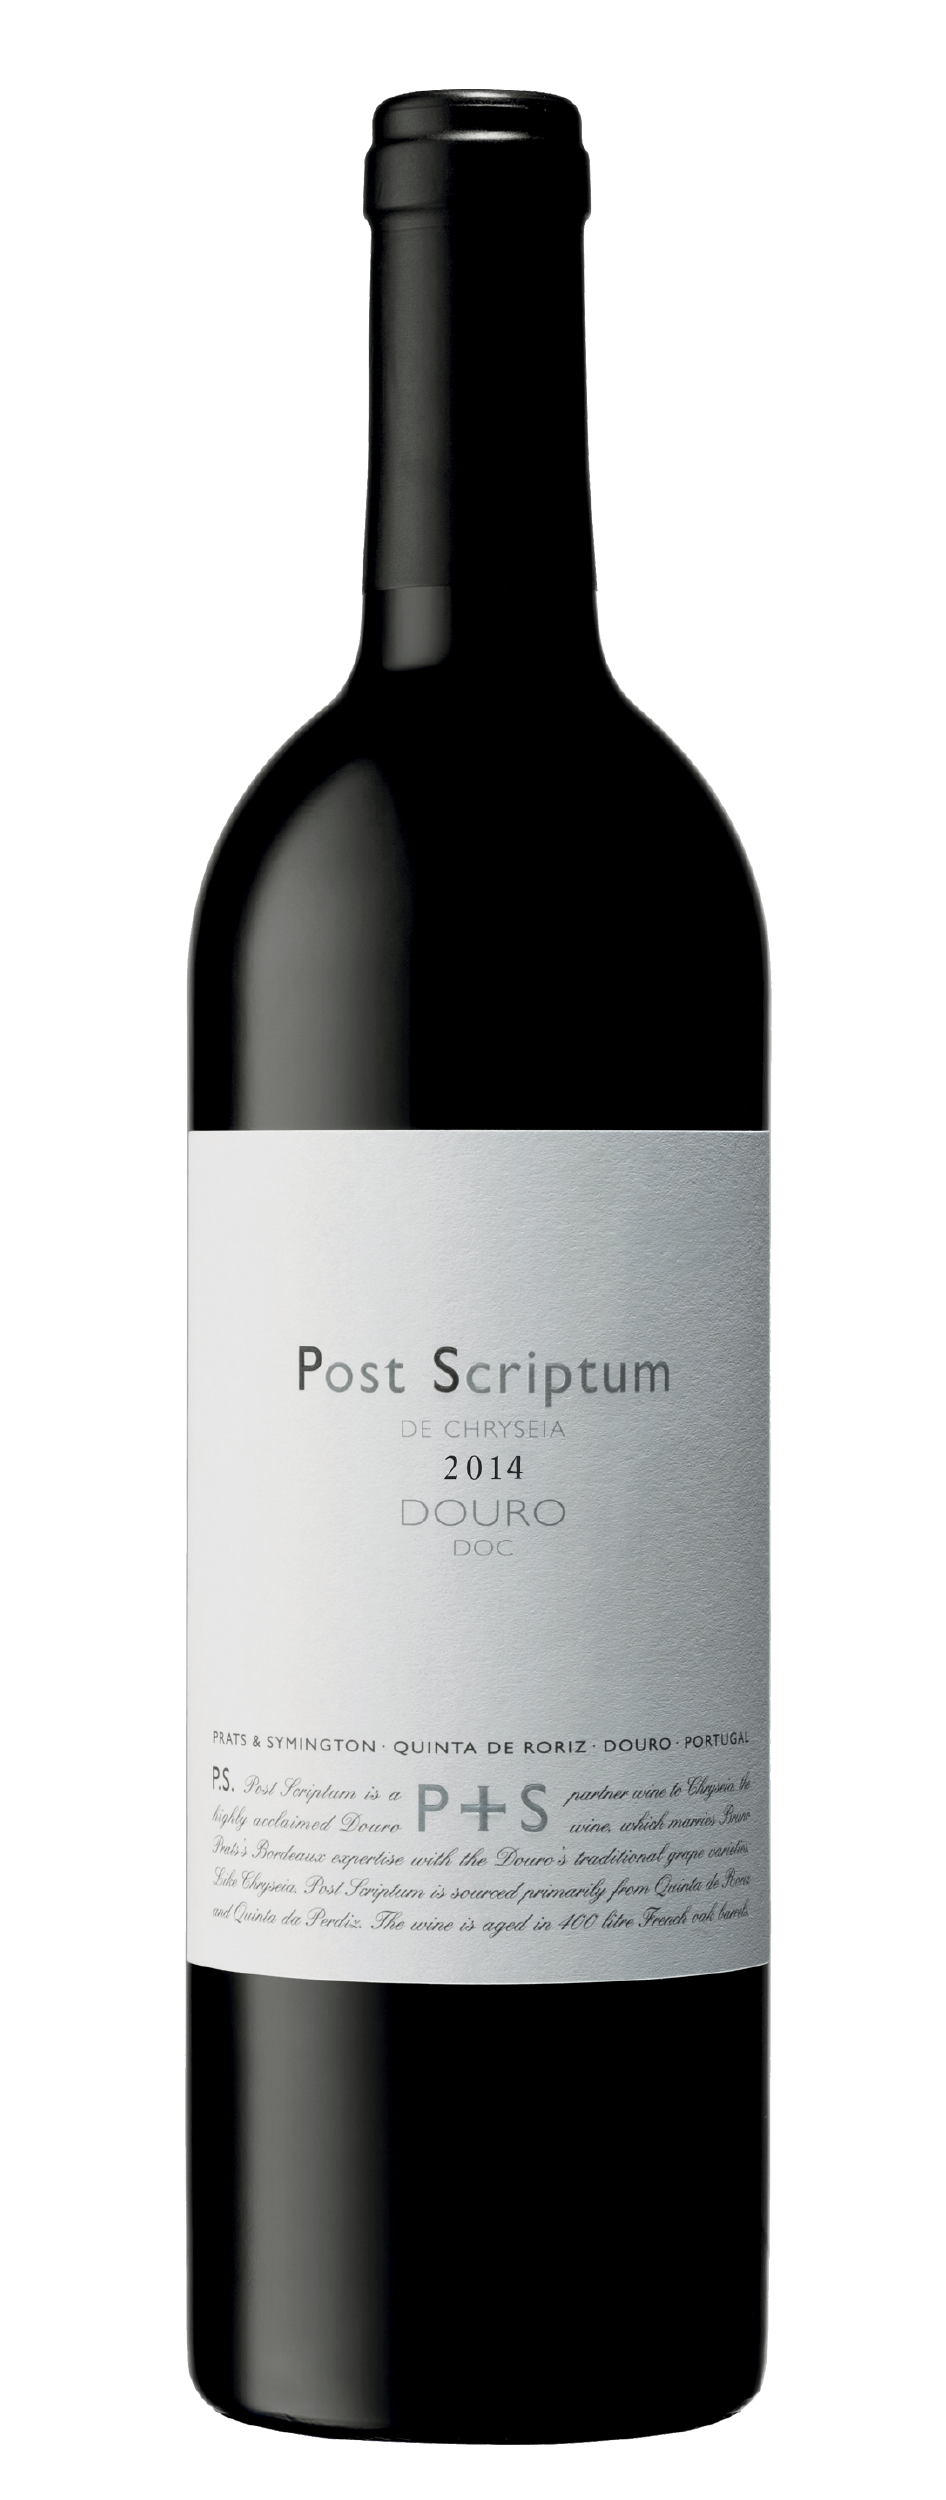 Product Image for P&S POST SCRIPTUM DE CHRYSEIA DOURO RED 2014 - MAGNUM